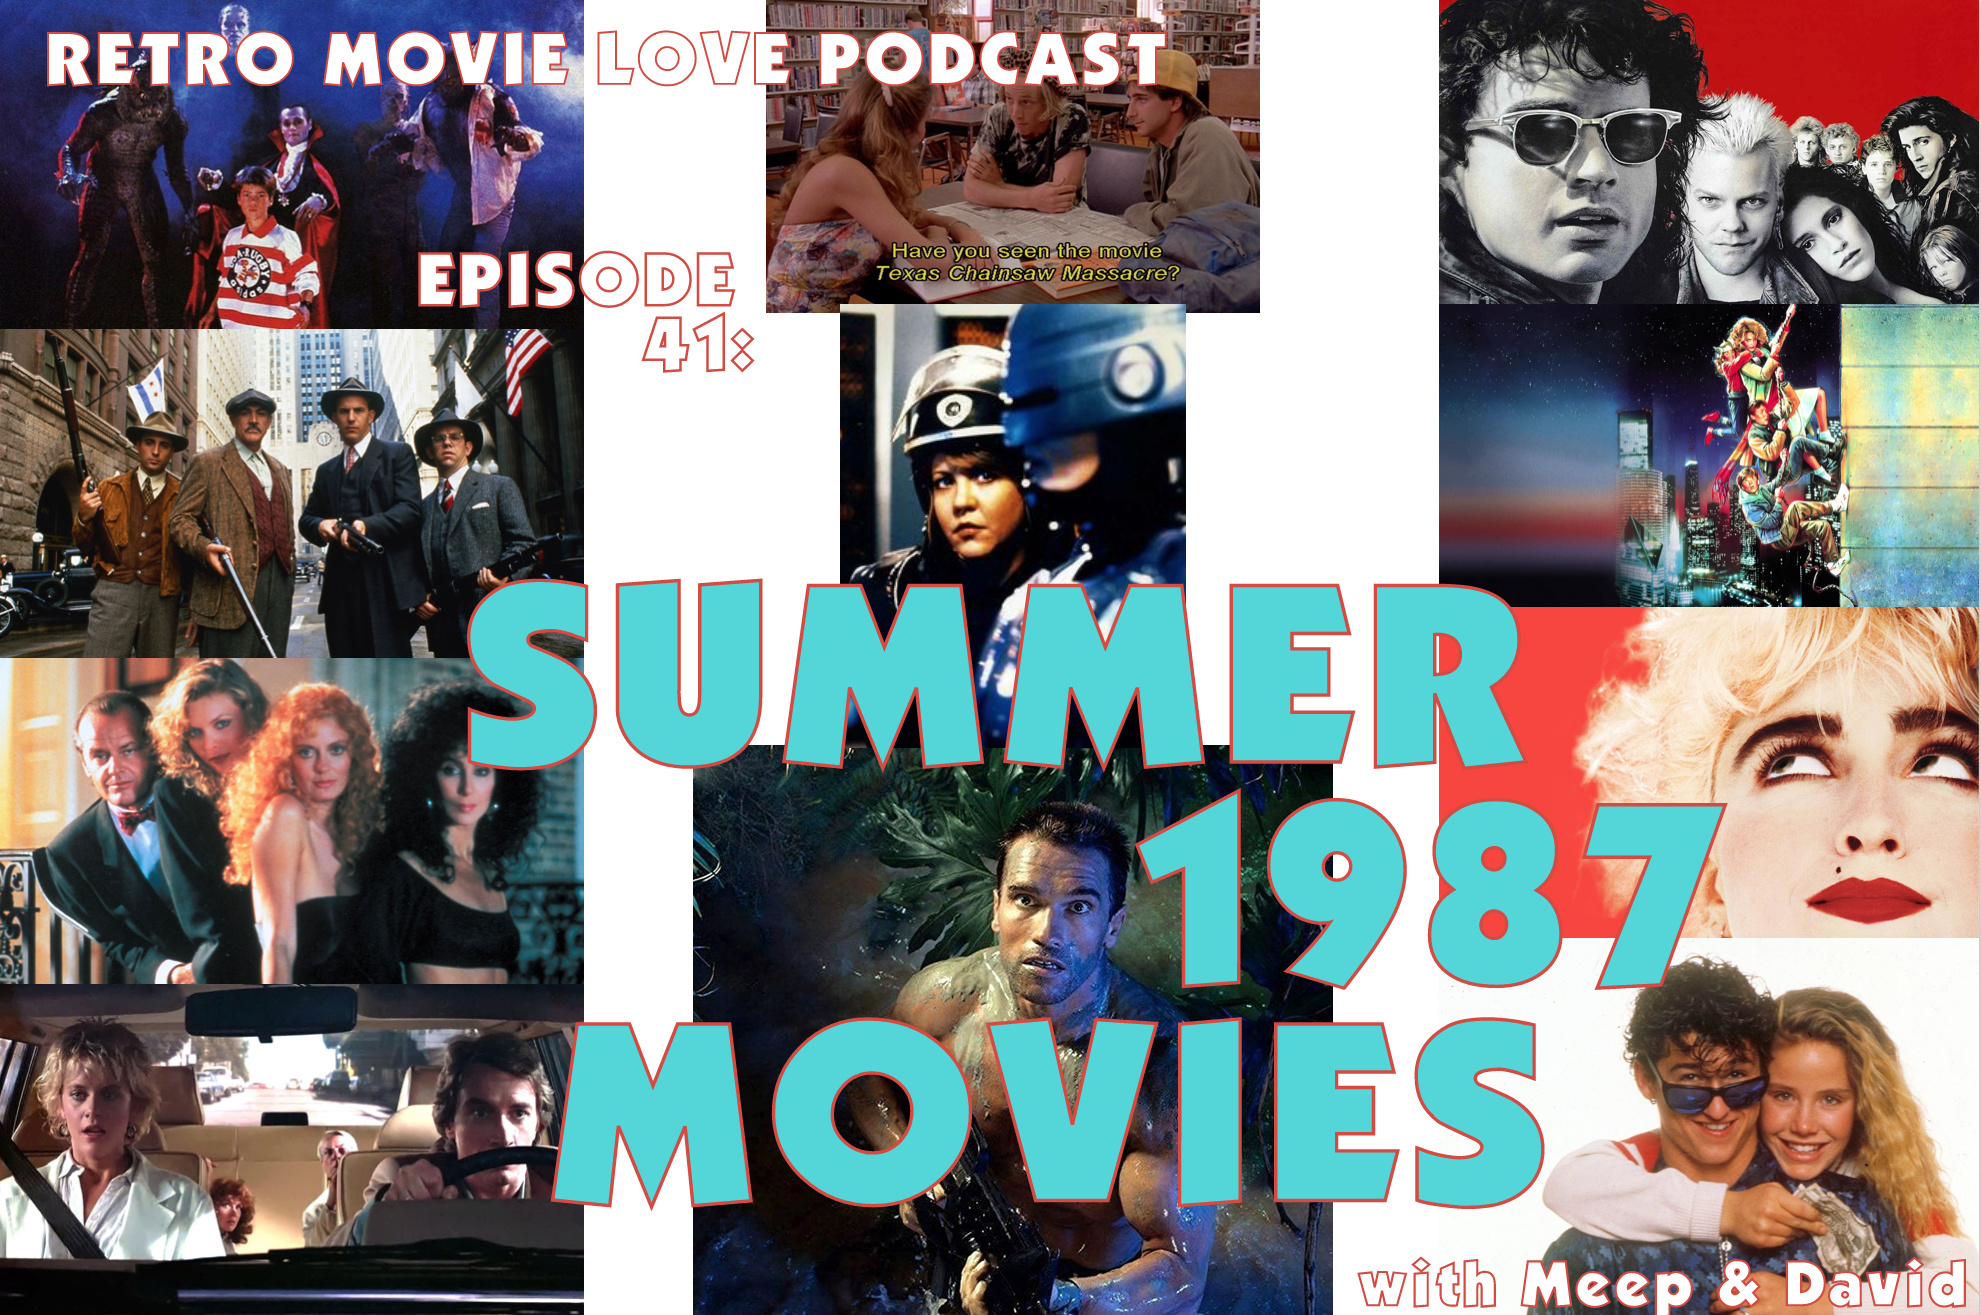 RETRO MOVIE LOVE PODCAST EPISODE 41 SUMMER 1987 MOVIES IMAGE.jpg